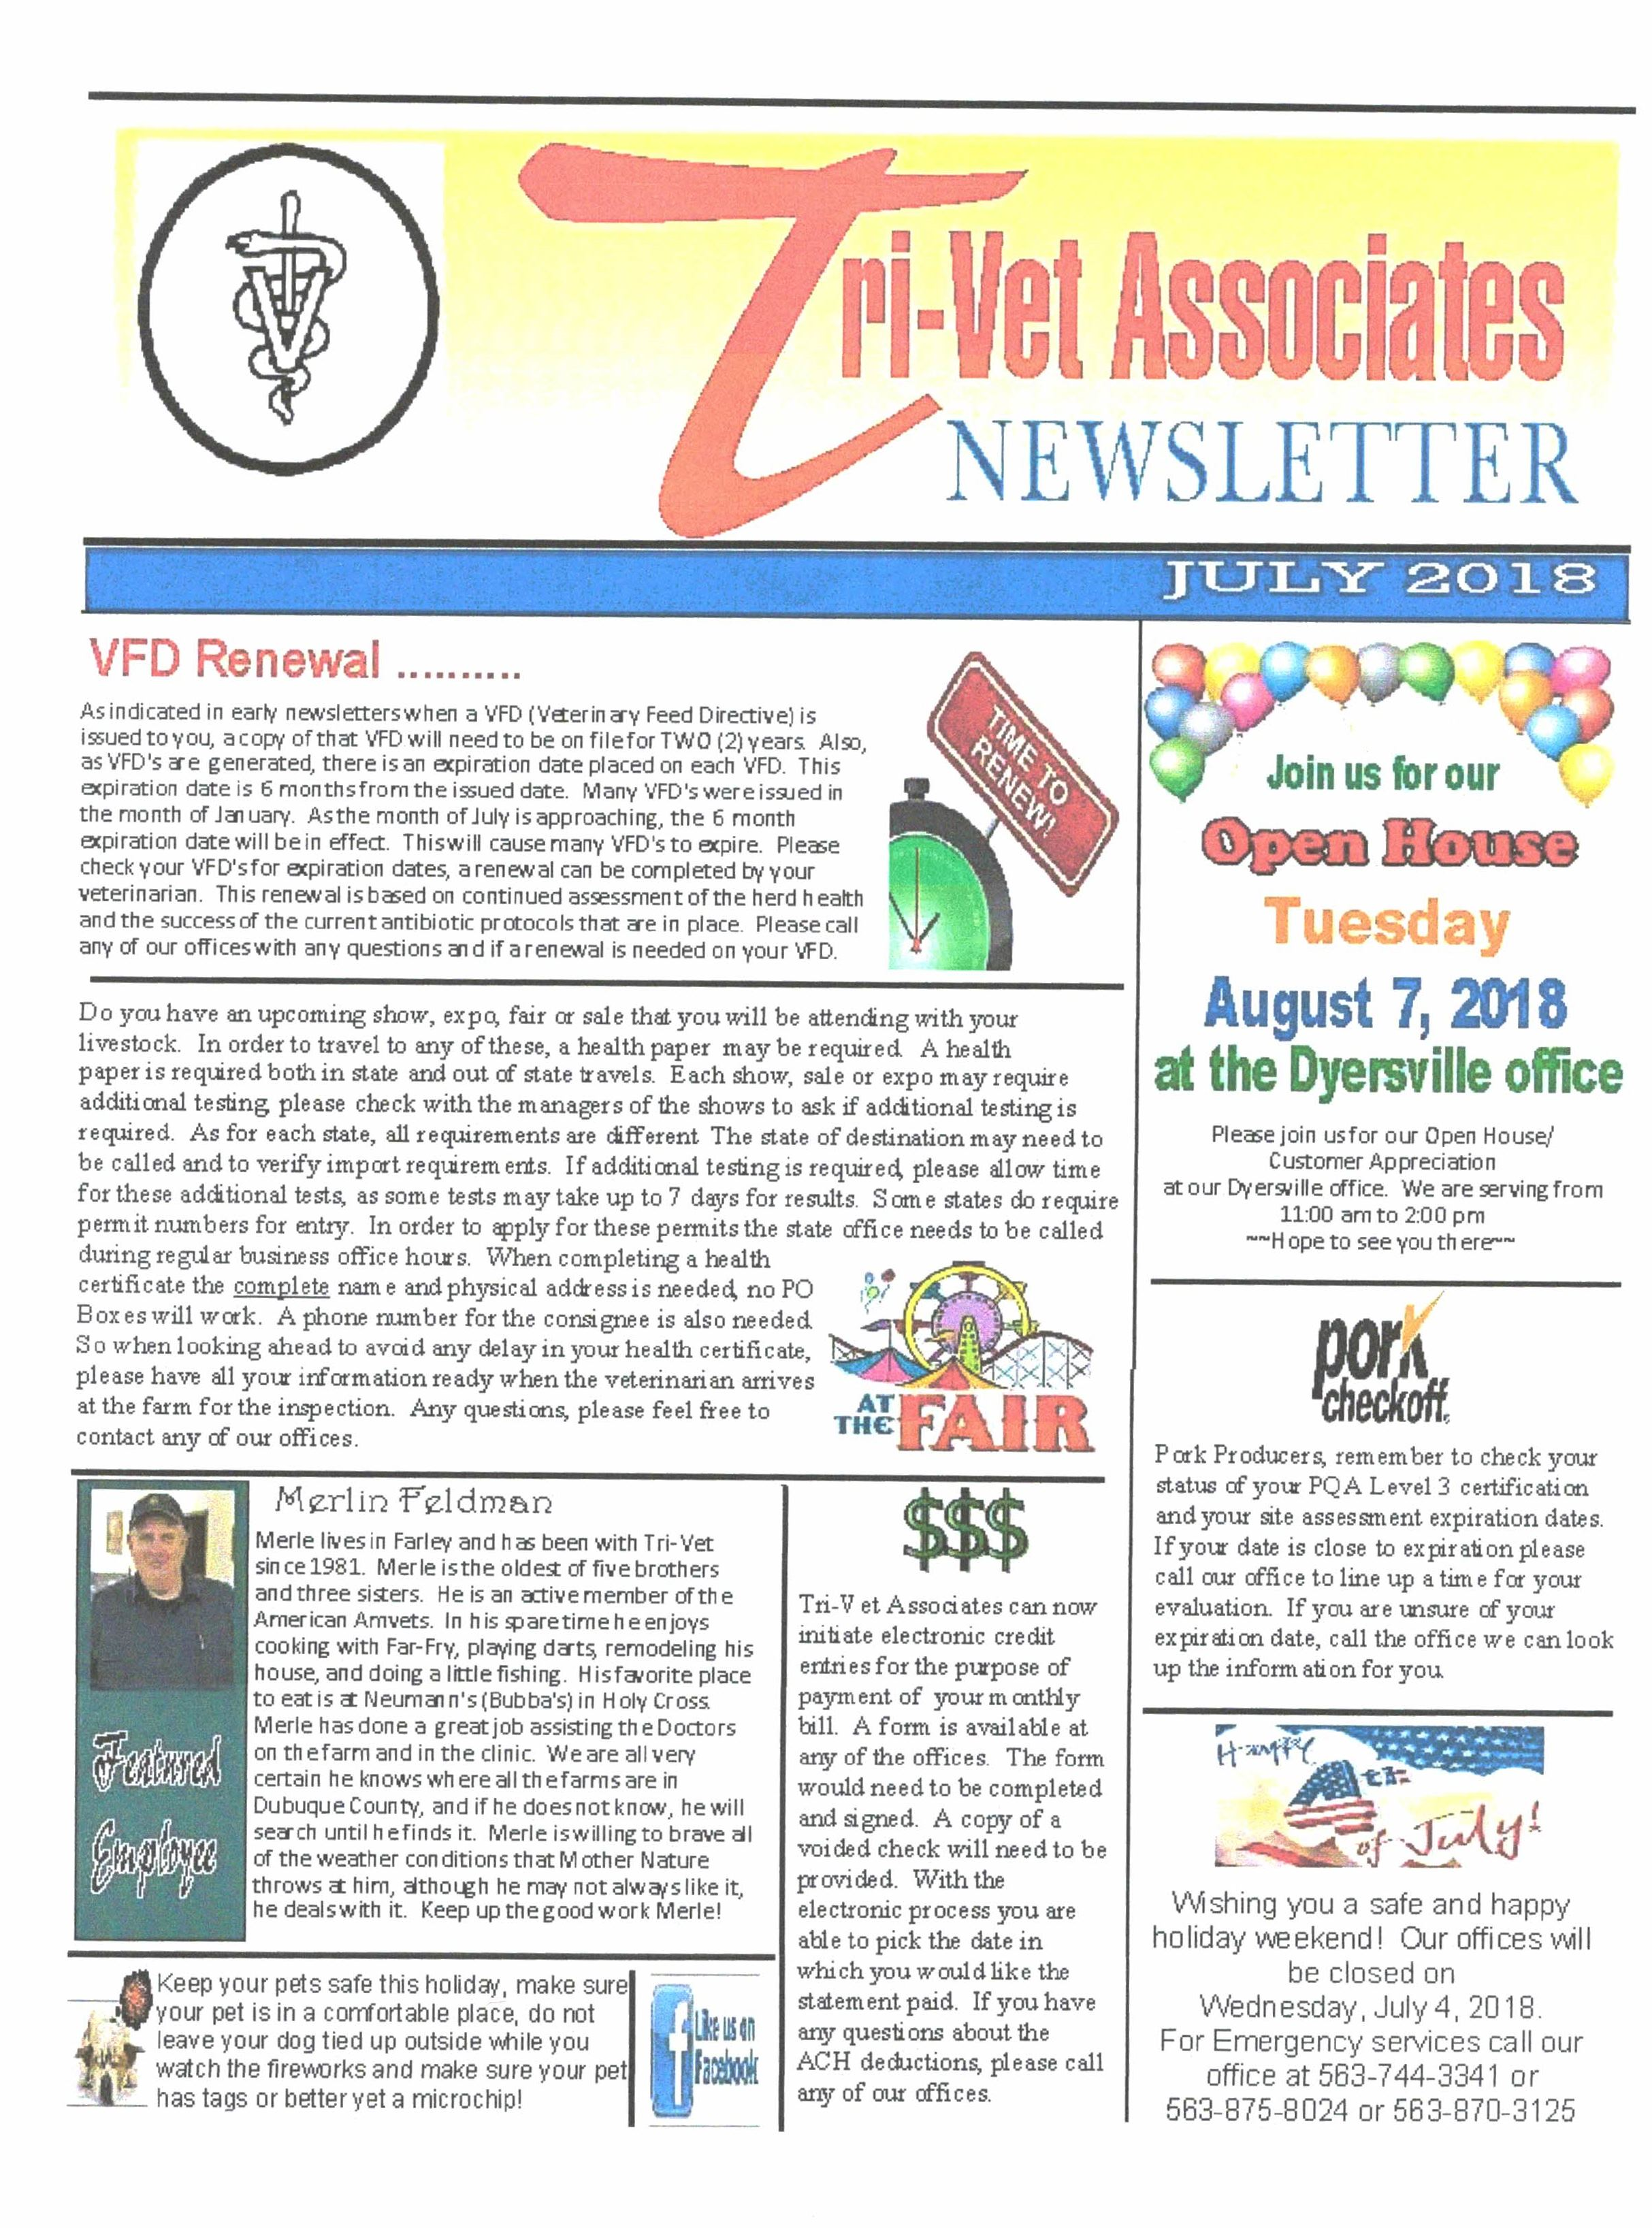 TriVet Association Newsletter  July   TriVet Associates Inc